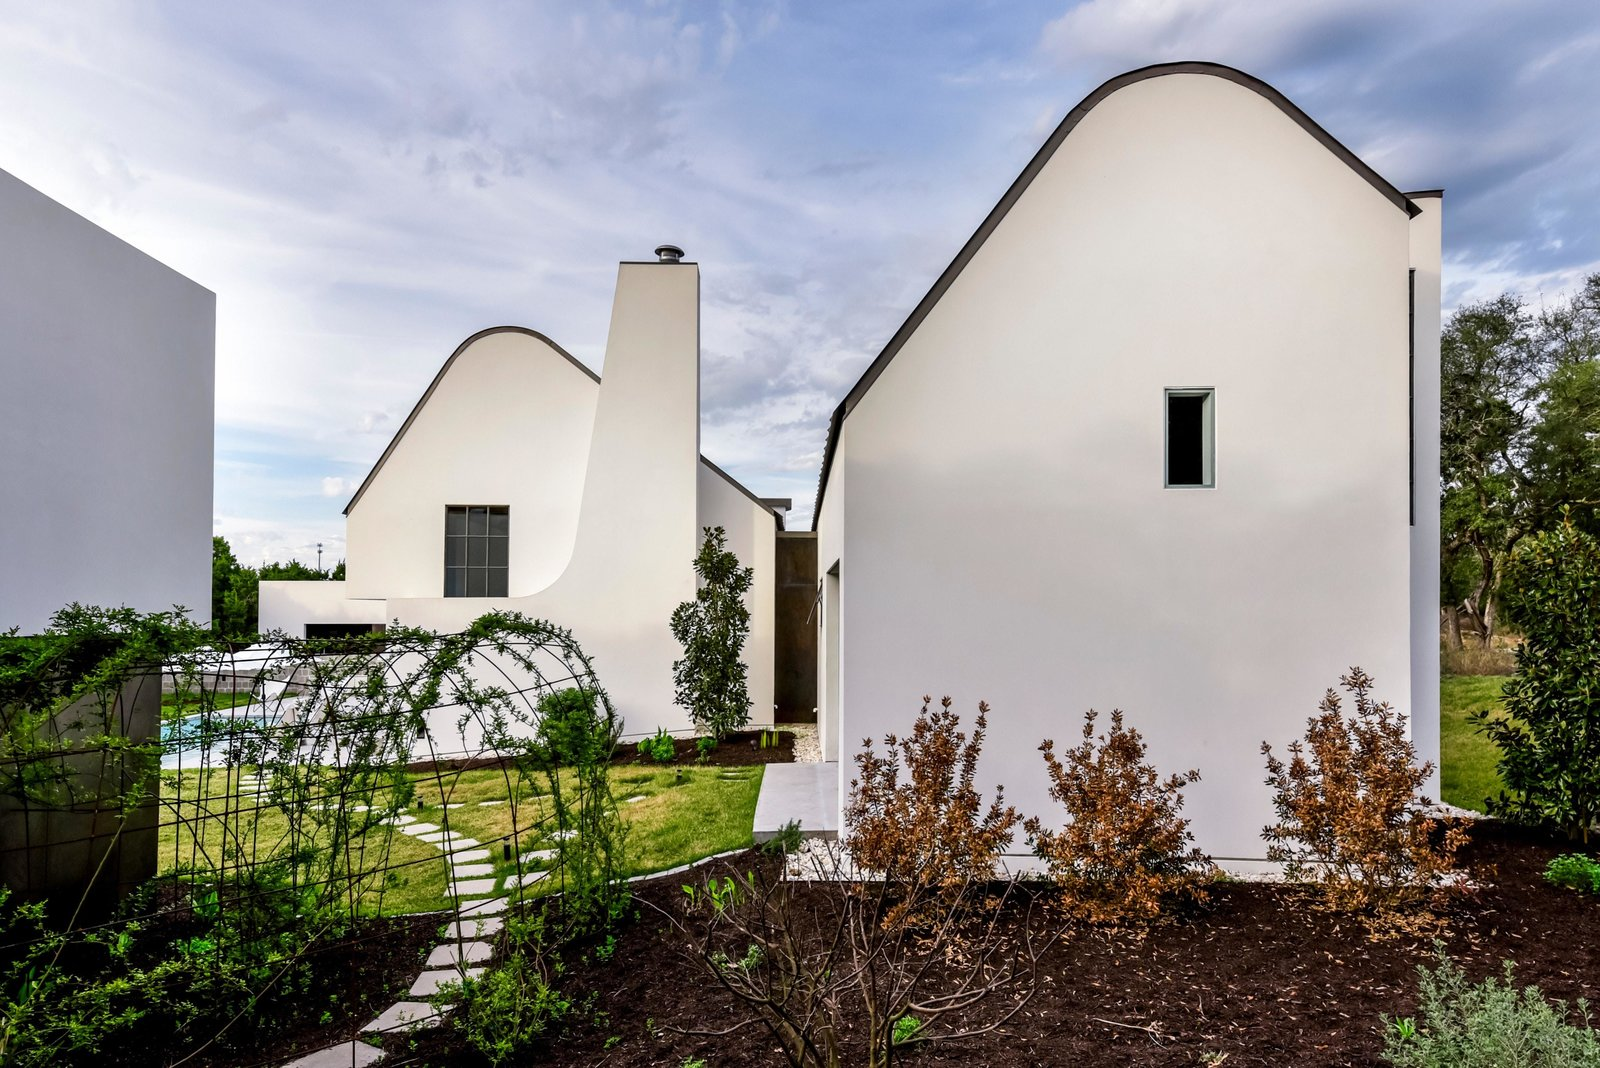 The stucco volumes create a sculptural composition within the landscape.